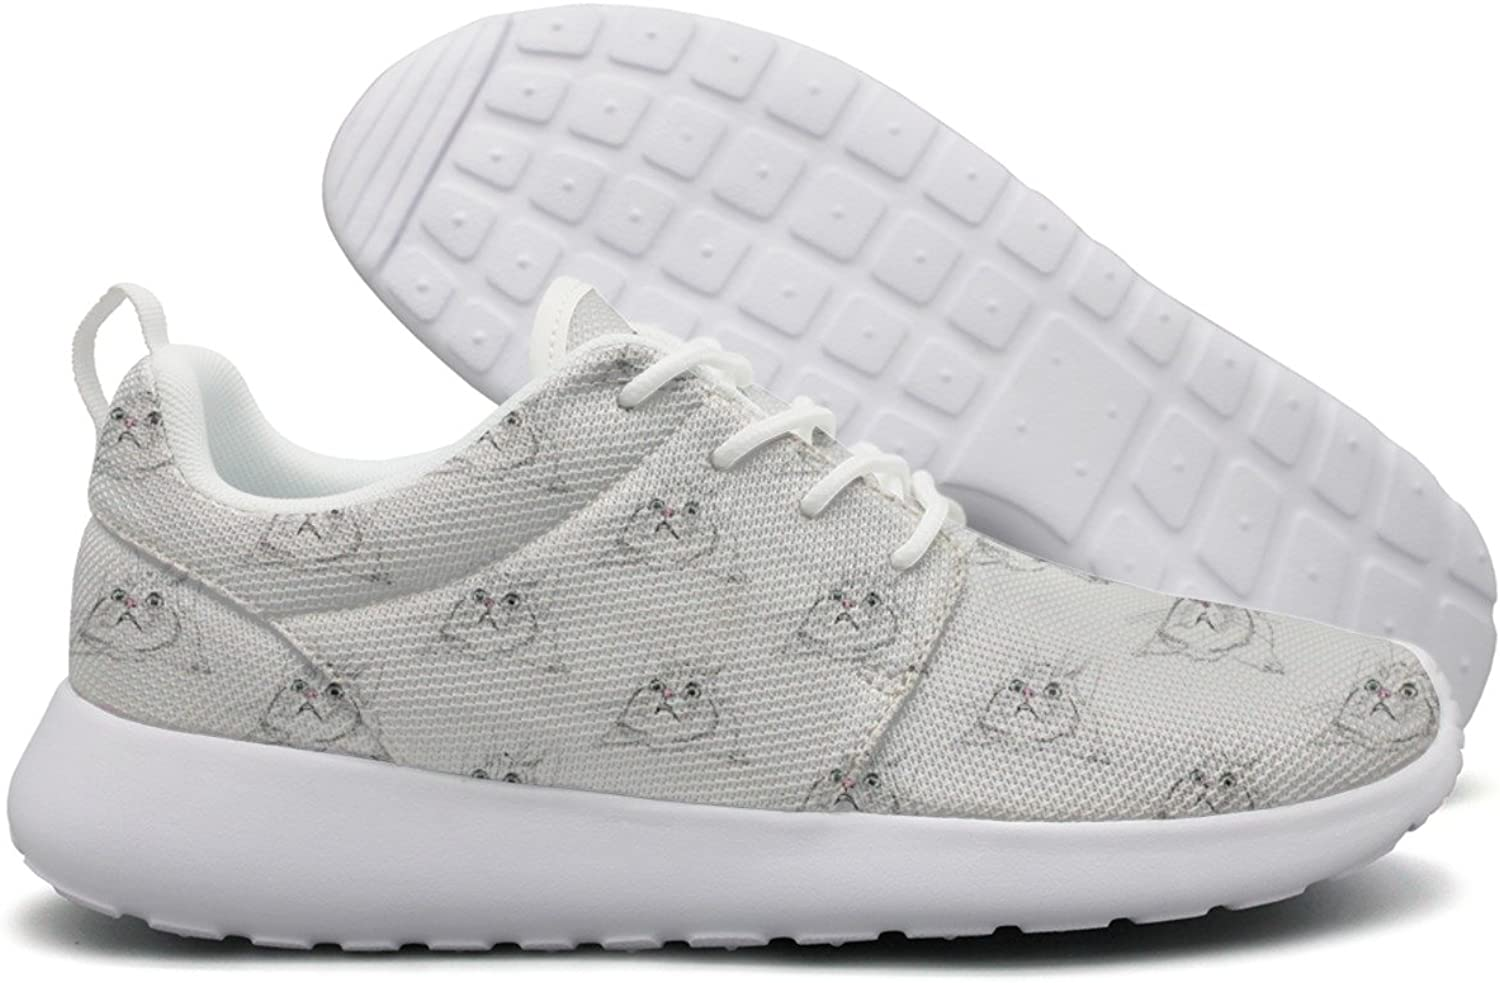 Hoohle Sports Surprised Cute Cat Face White Background Women Roshe One Flex Mesh Men Running shoes